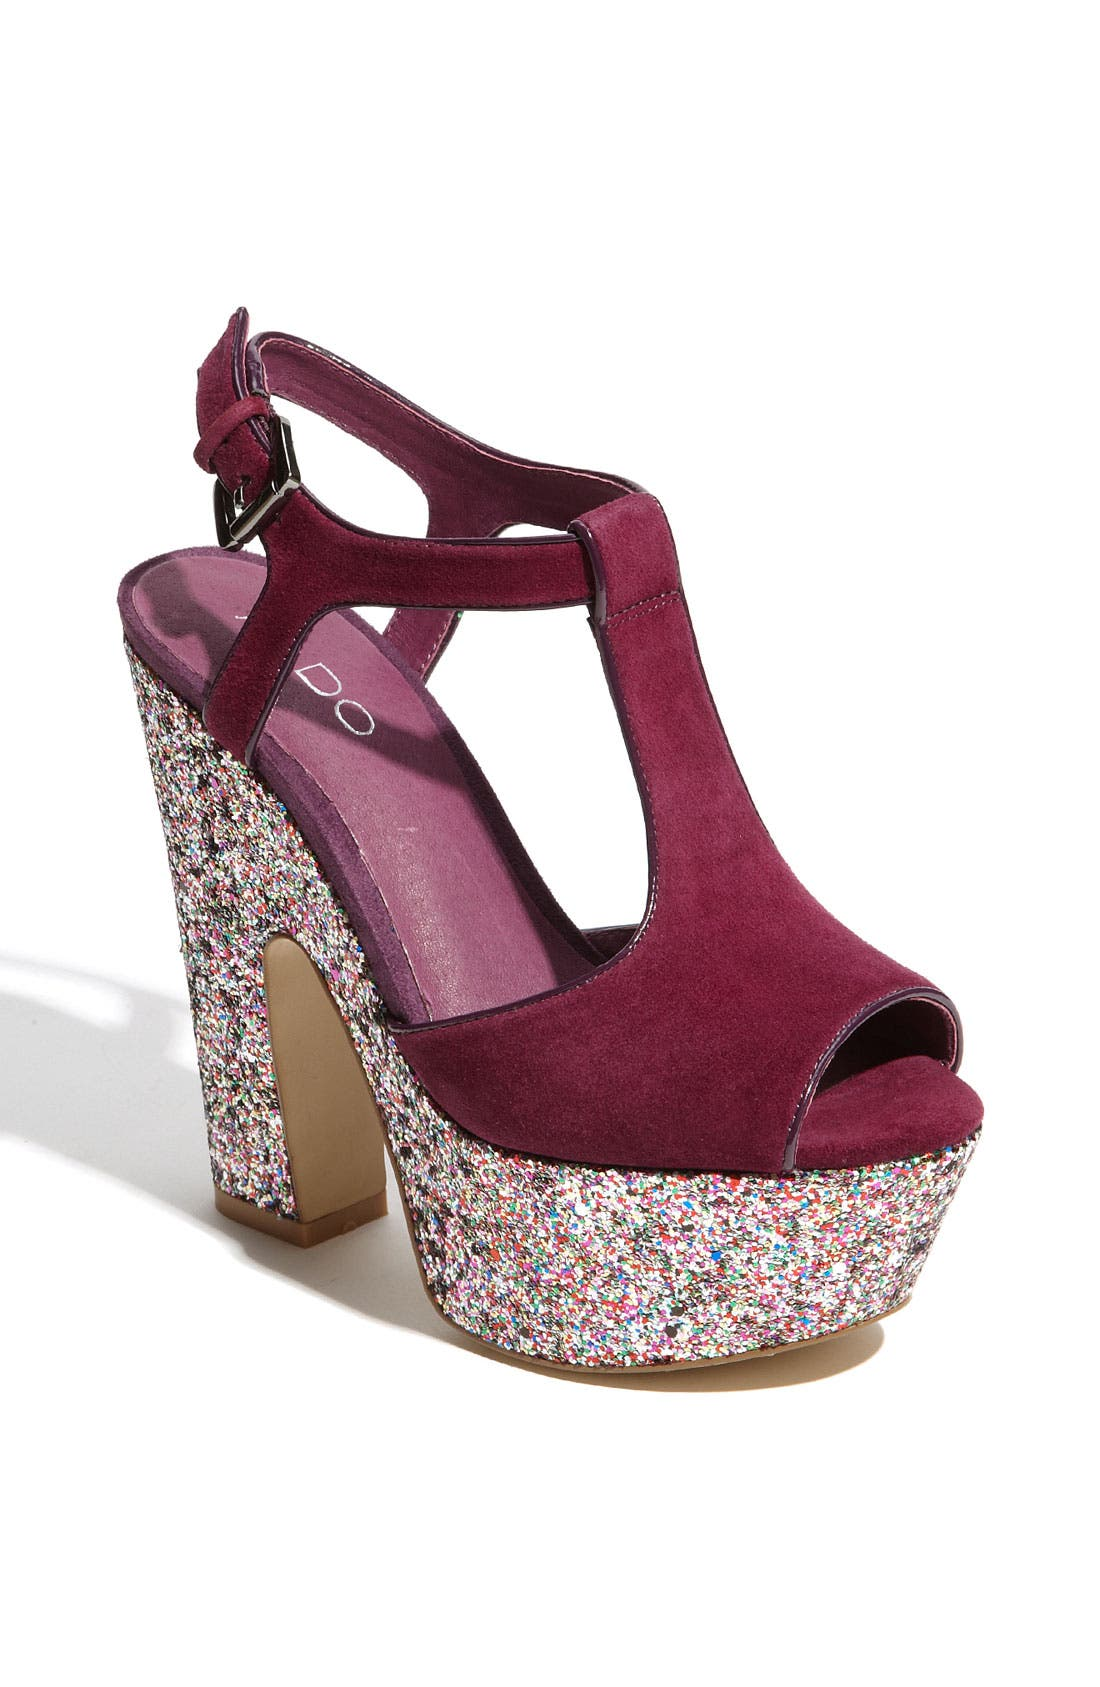 Alternate Image 1 Selected - ALDO 'Trejos Glitter' Sandal